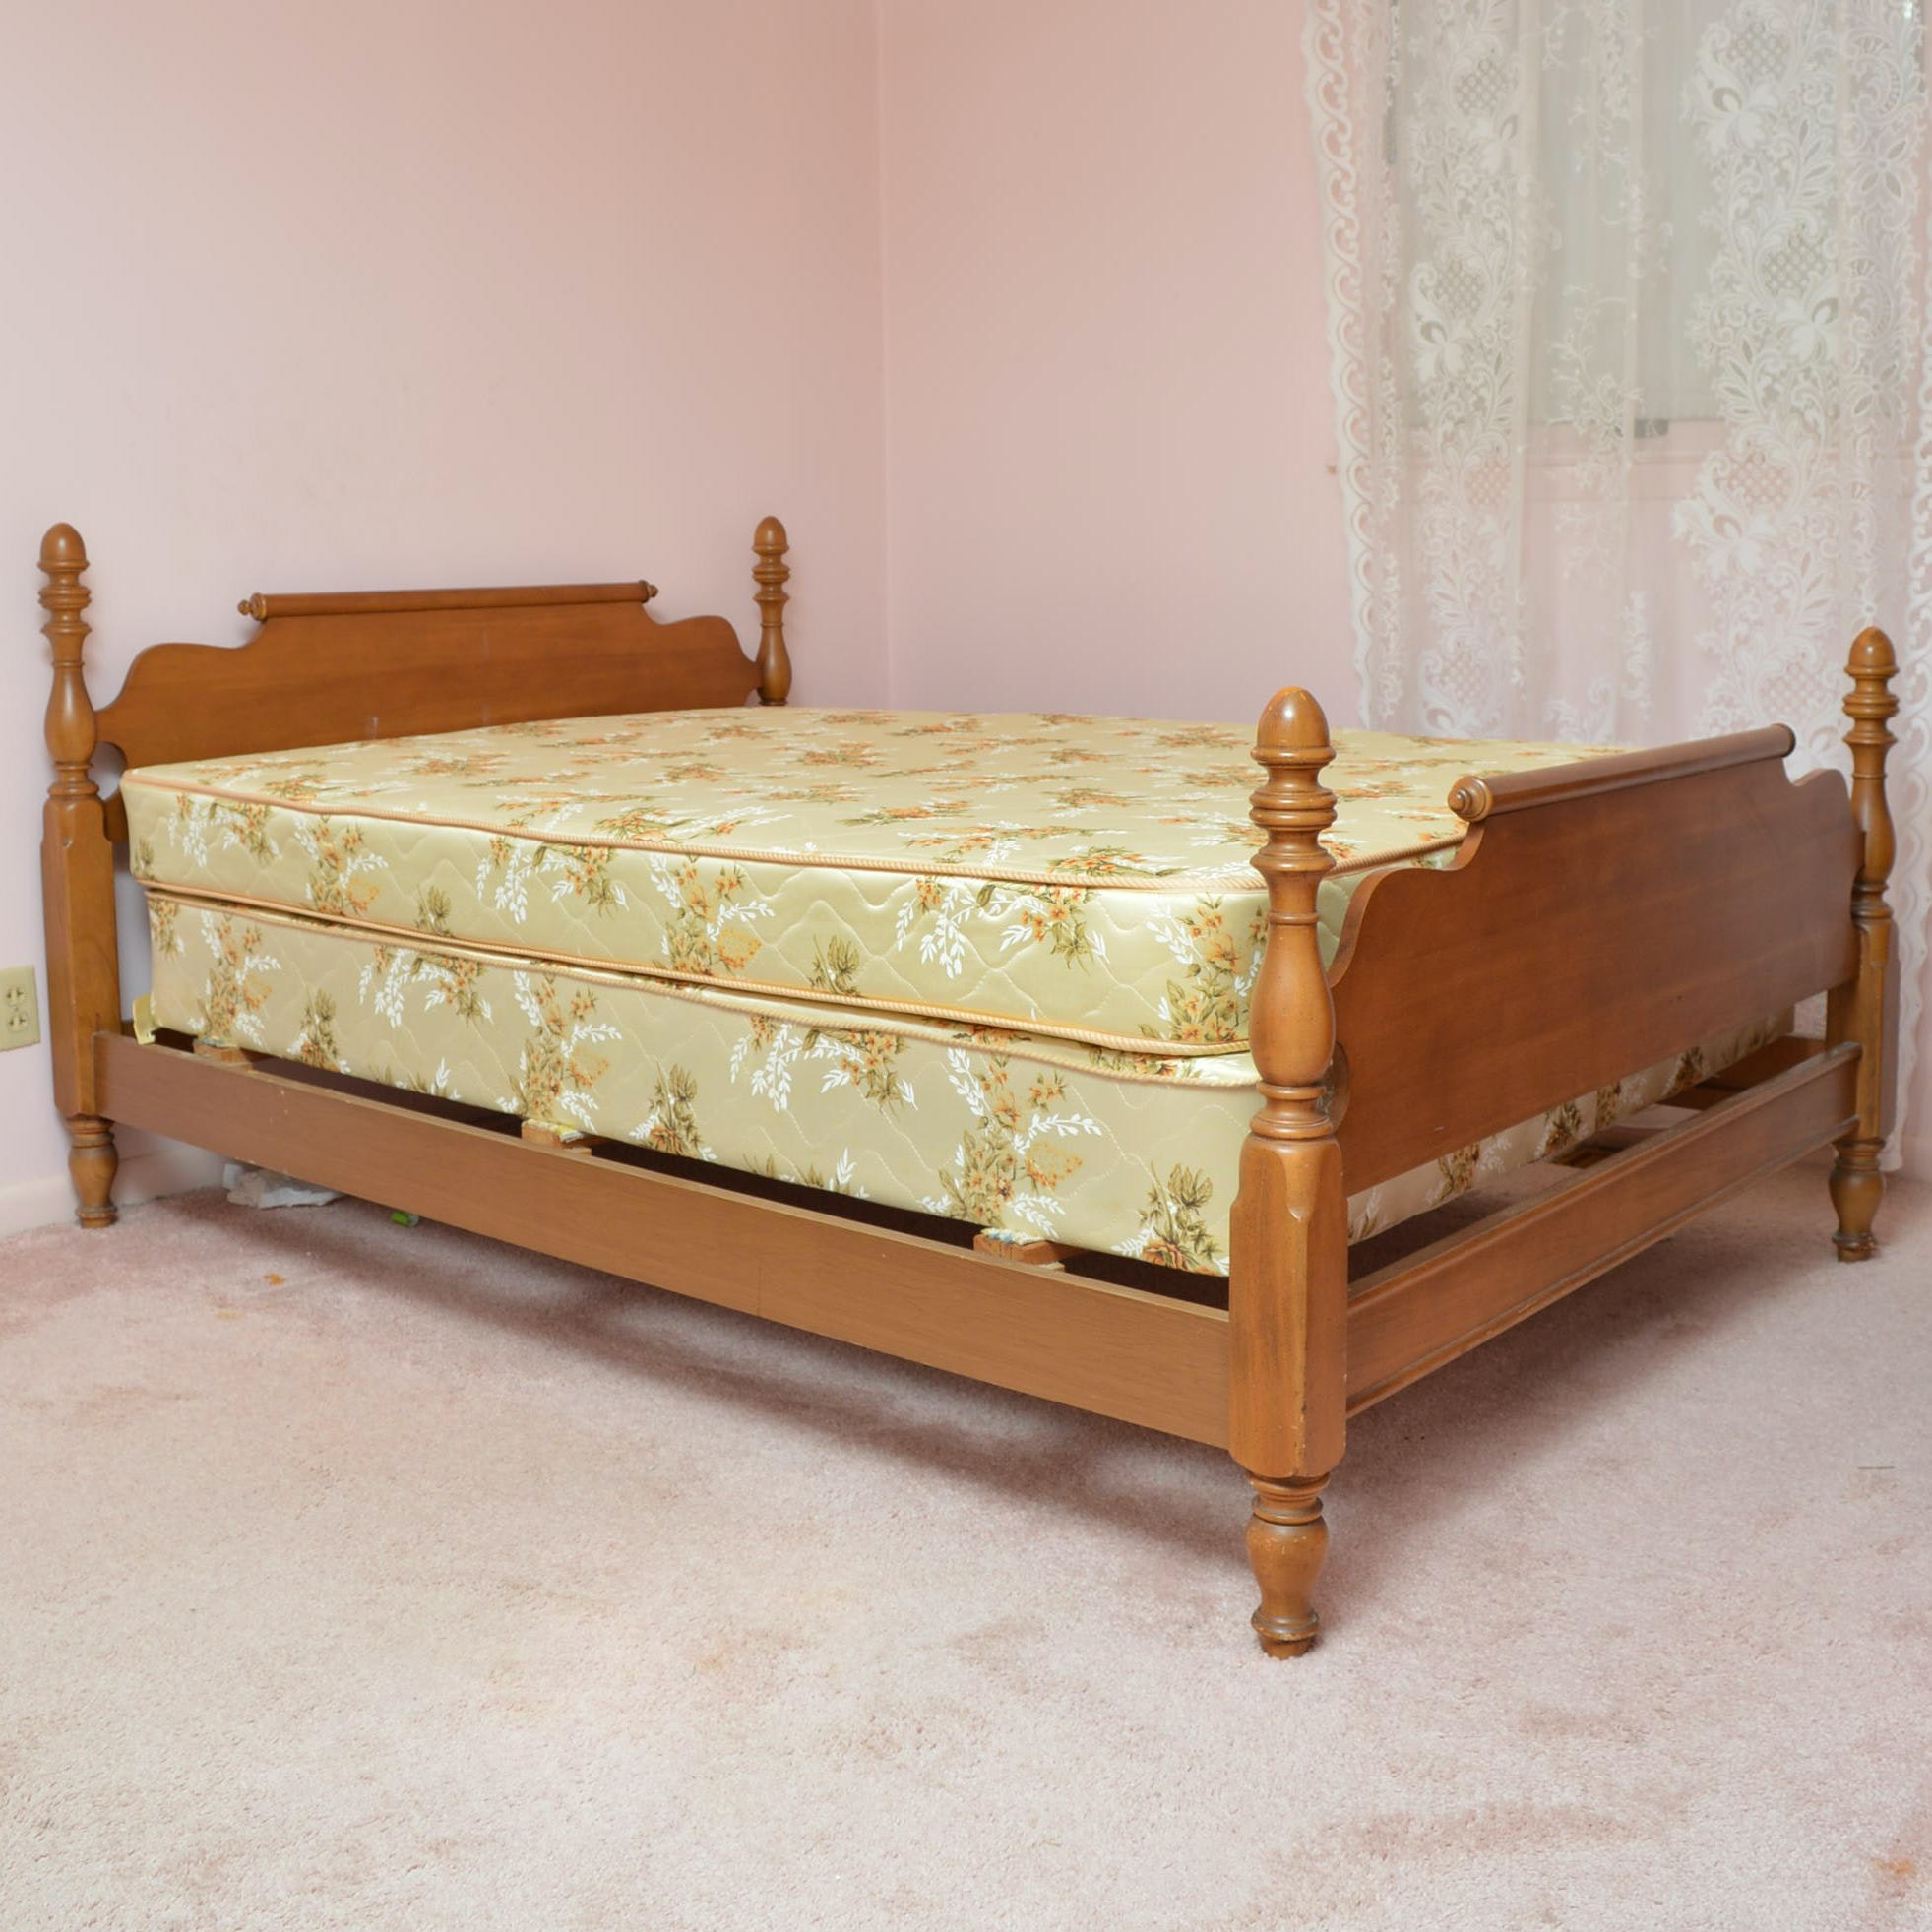 Full Sized Maple Bed